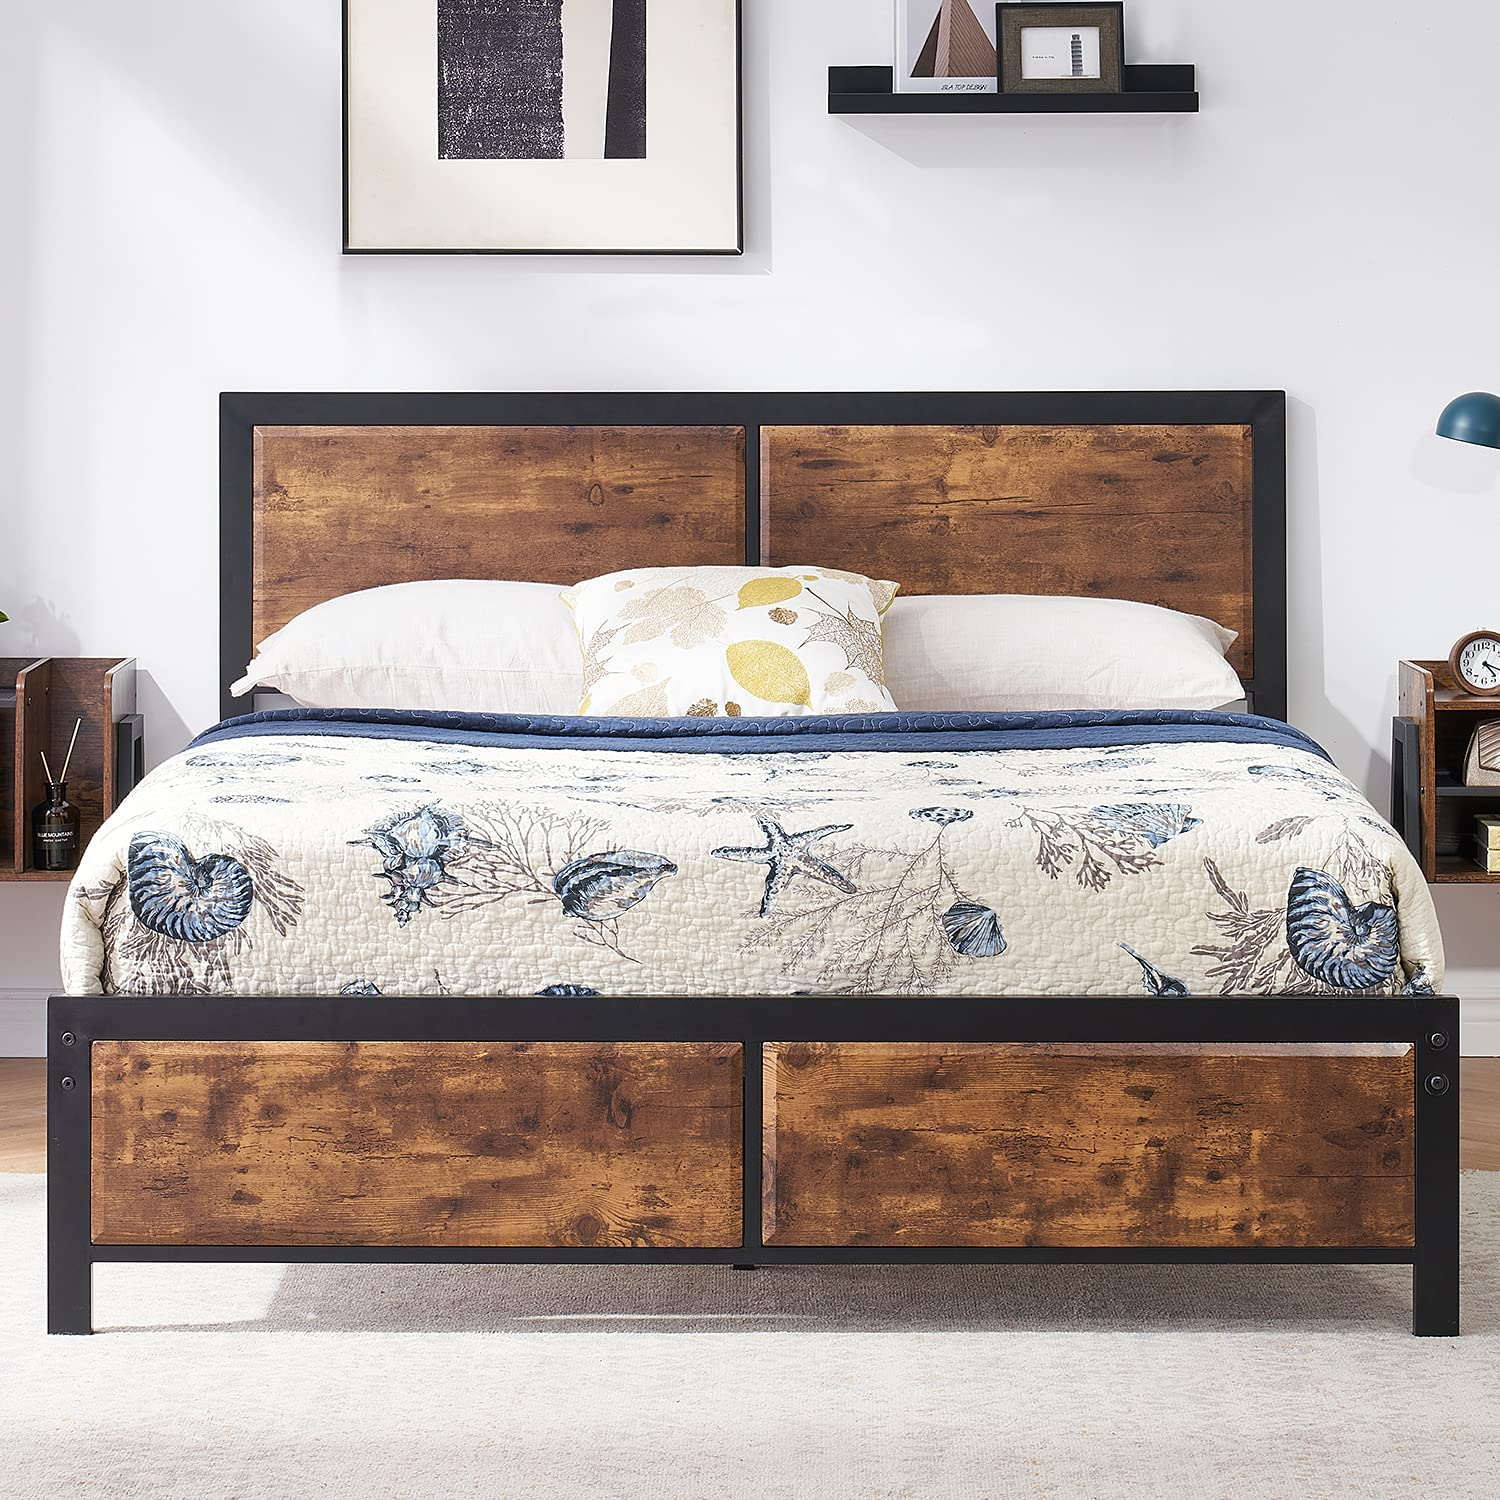 VECELO Full Platform Bed Frame with Rustic Vintage Wood Headboard, Mattress Foundation, Strong Metal Slats Support, No Box Spring Needed